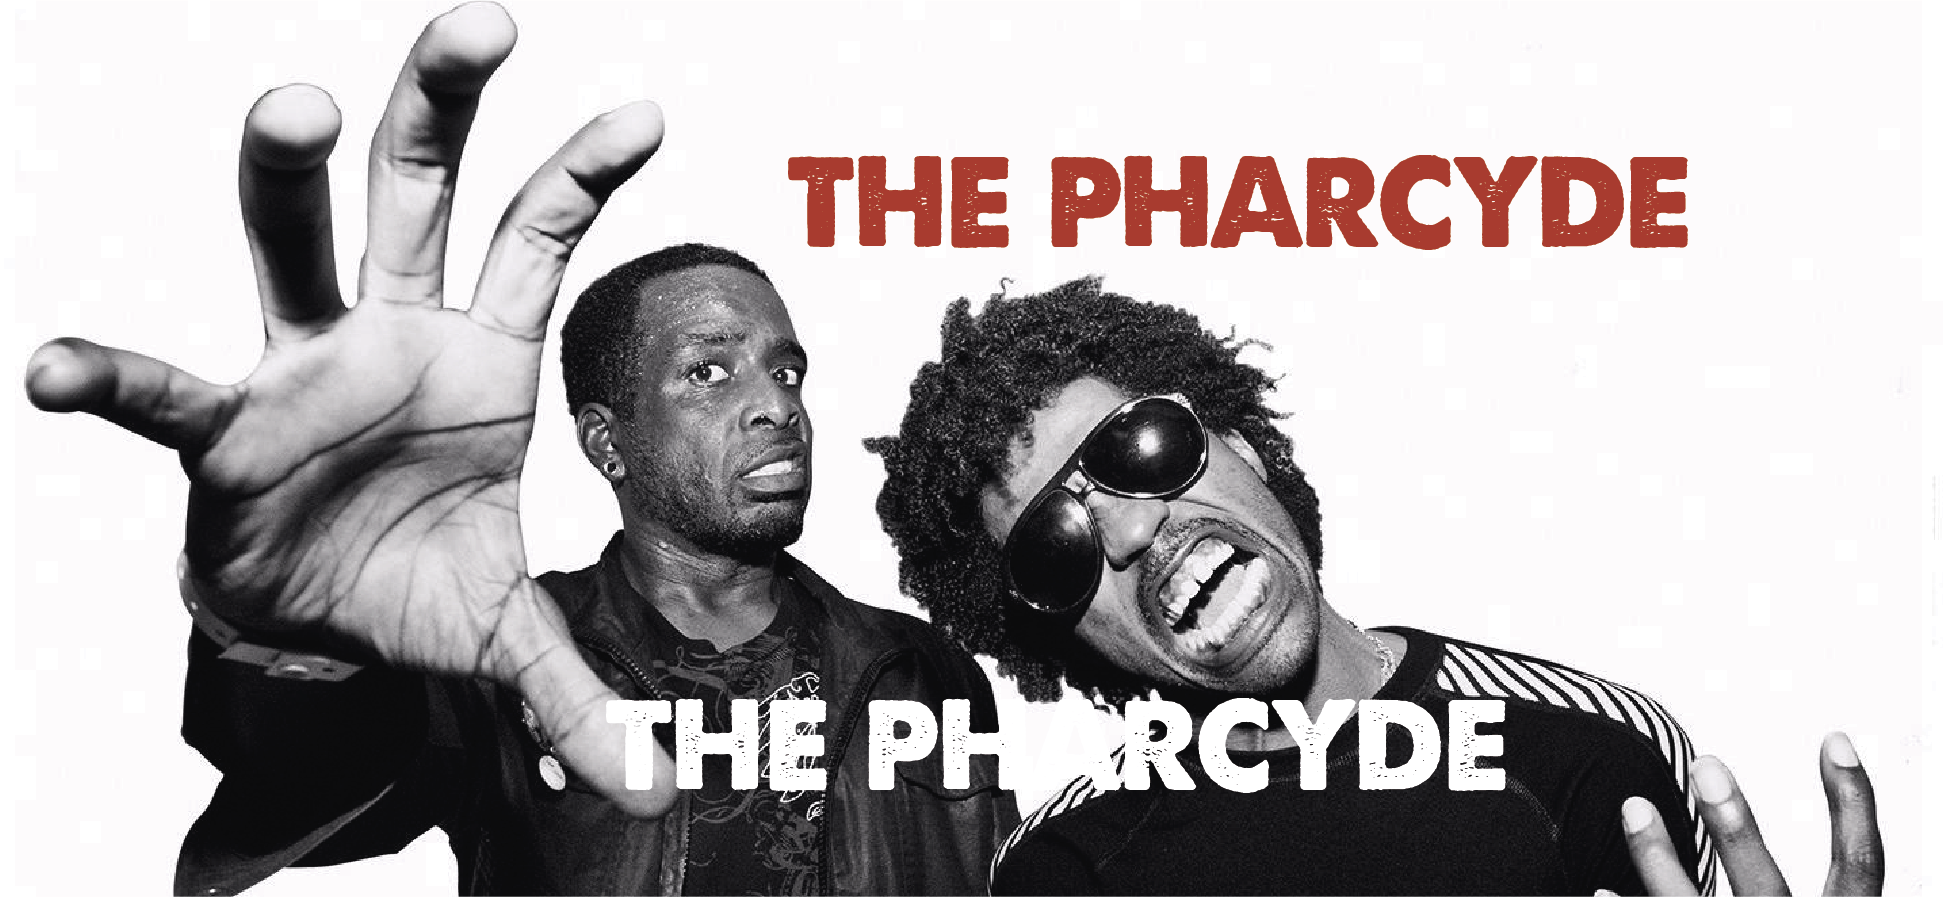 Profile: THE PHARCYDE